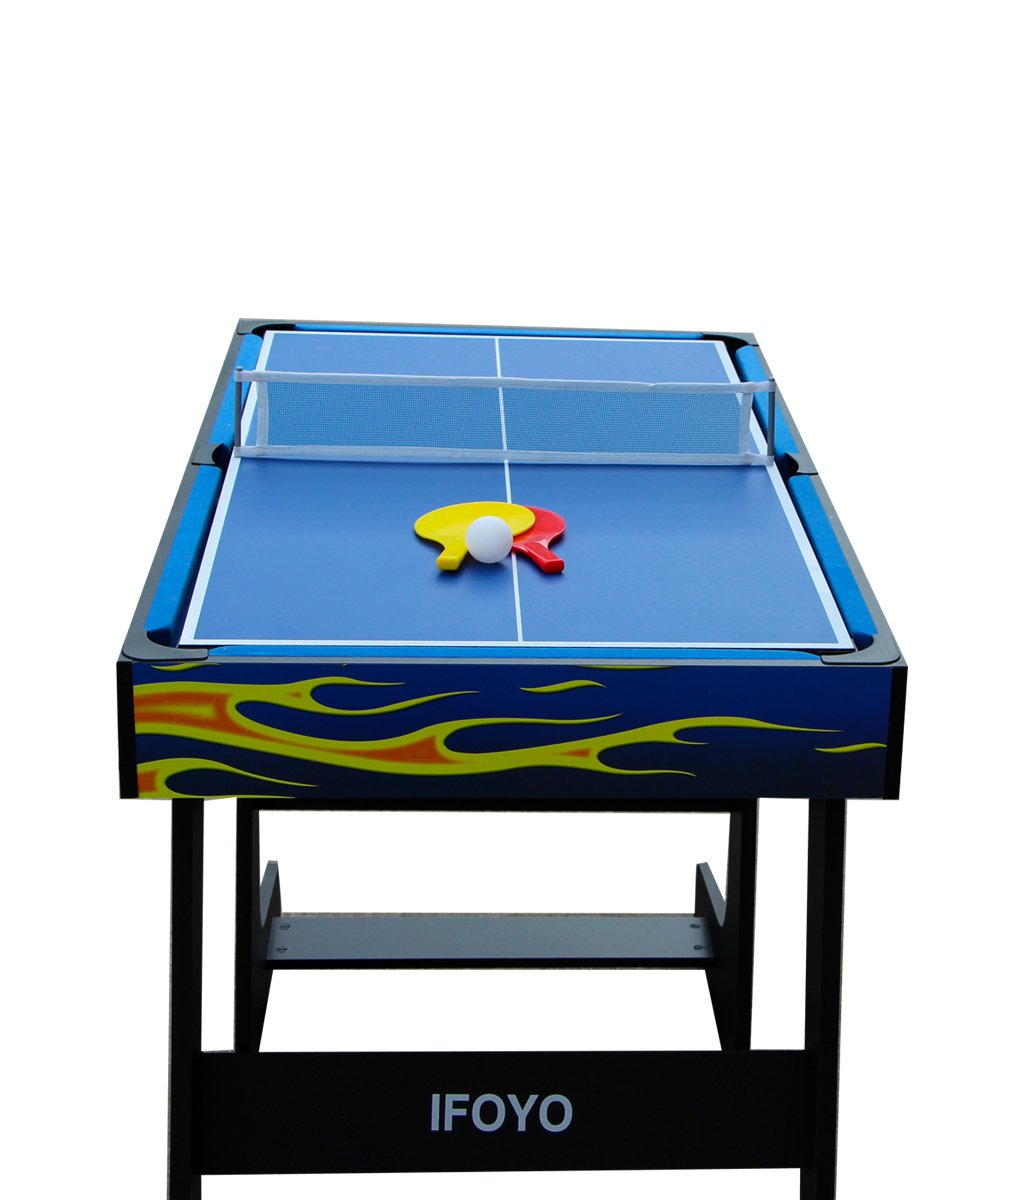 IFOYO Multi-Function 4 in 1 Steady Combo Game Table, Hockey Table, Soccer Foosball Table, Pool Table, Table Tennis Table, Yellow Flame, 48 in / 4 ft, Christams Gift by IFOYO (Image #5)